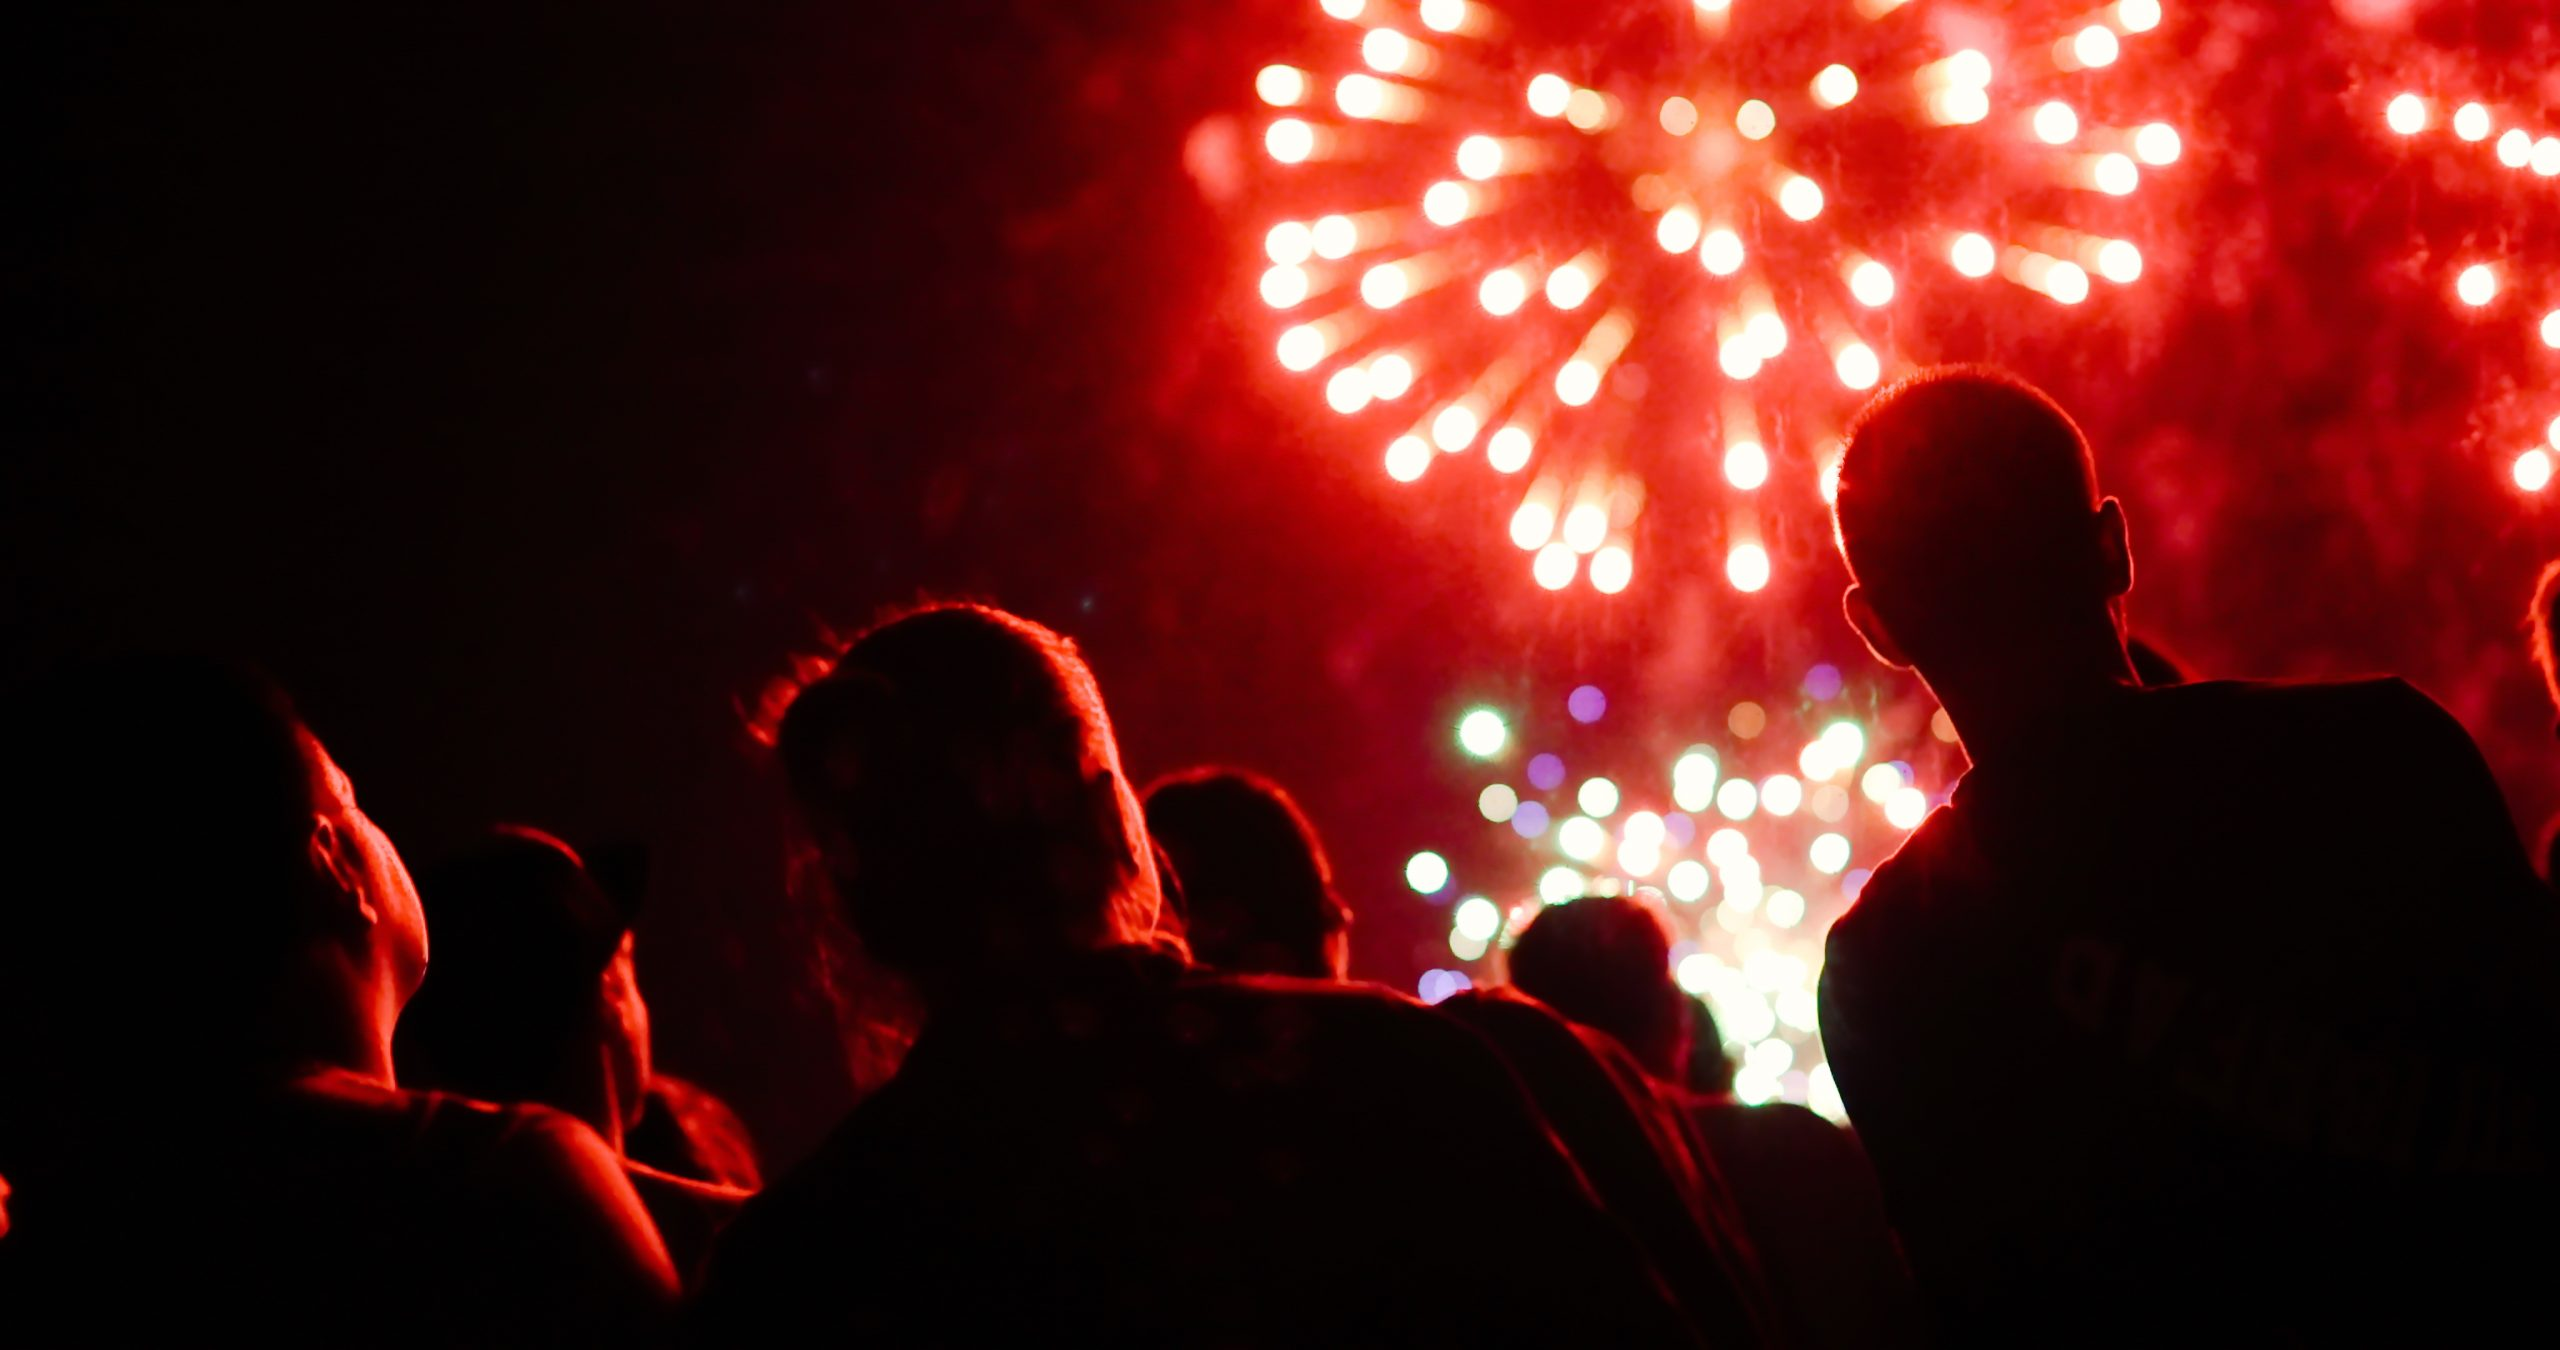 Want To See More Fireworks? photo